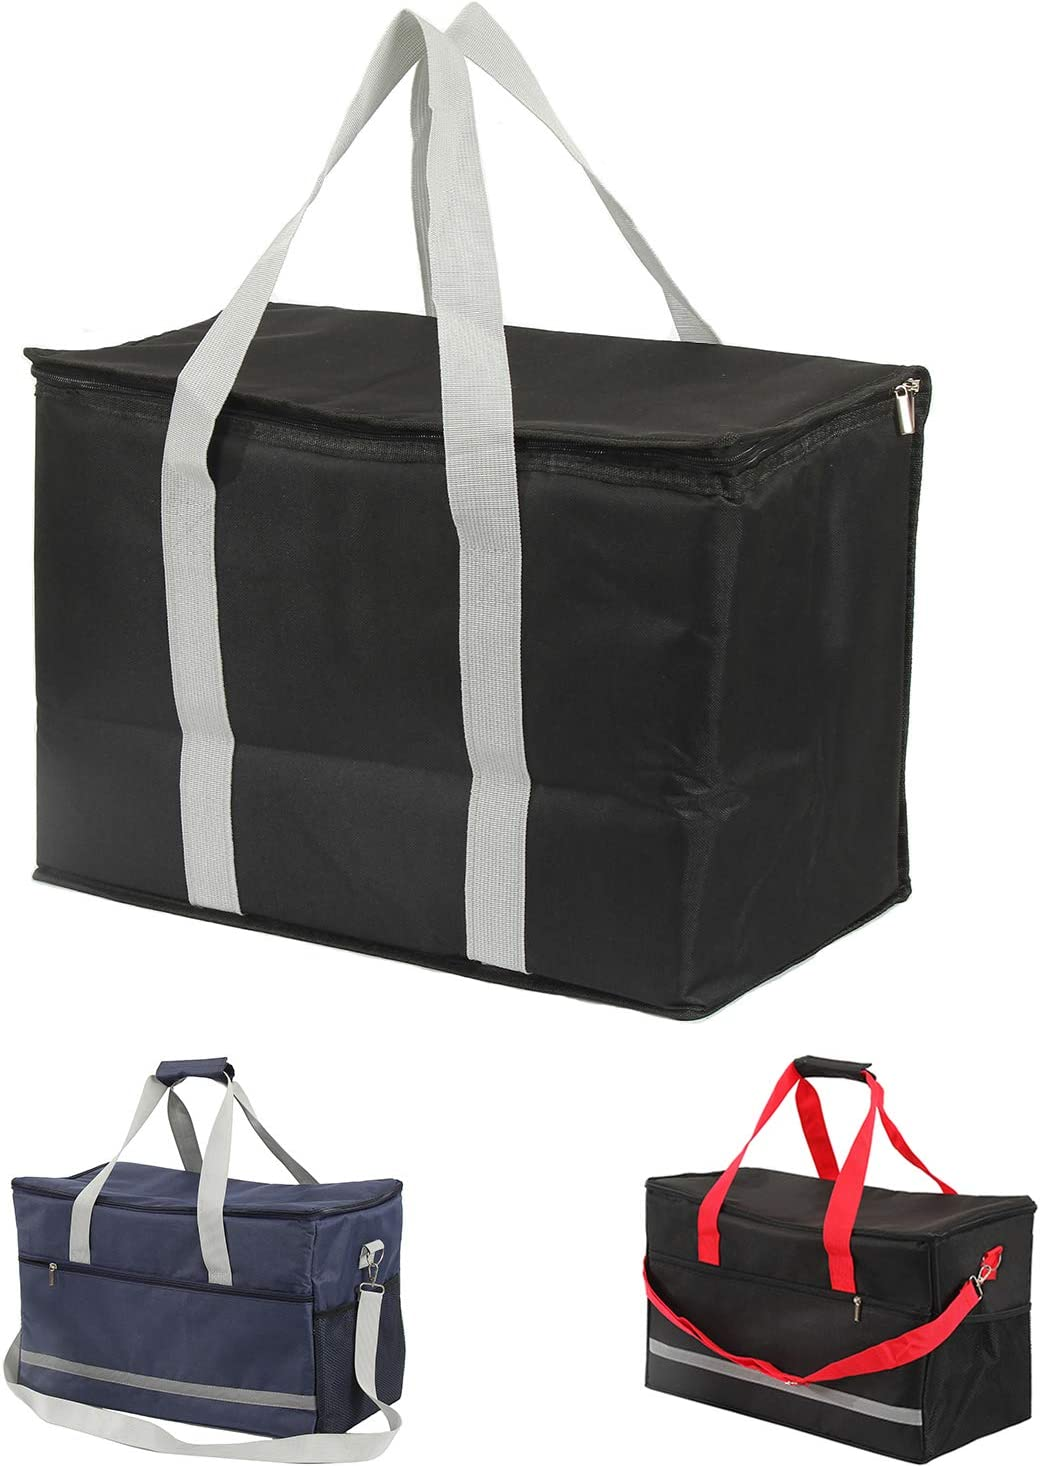 Foldable food insulation tote bag,Reusable food insulation bags,Can be used for food transportation, camping, picnic, travel